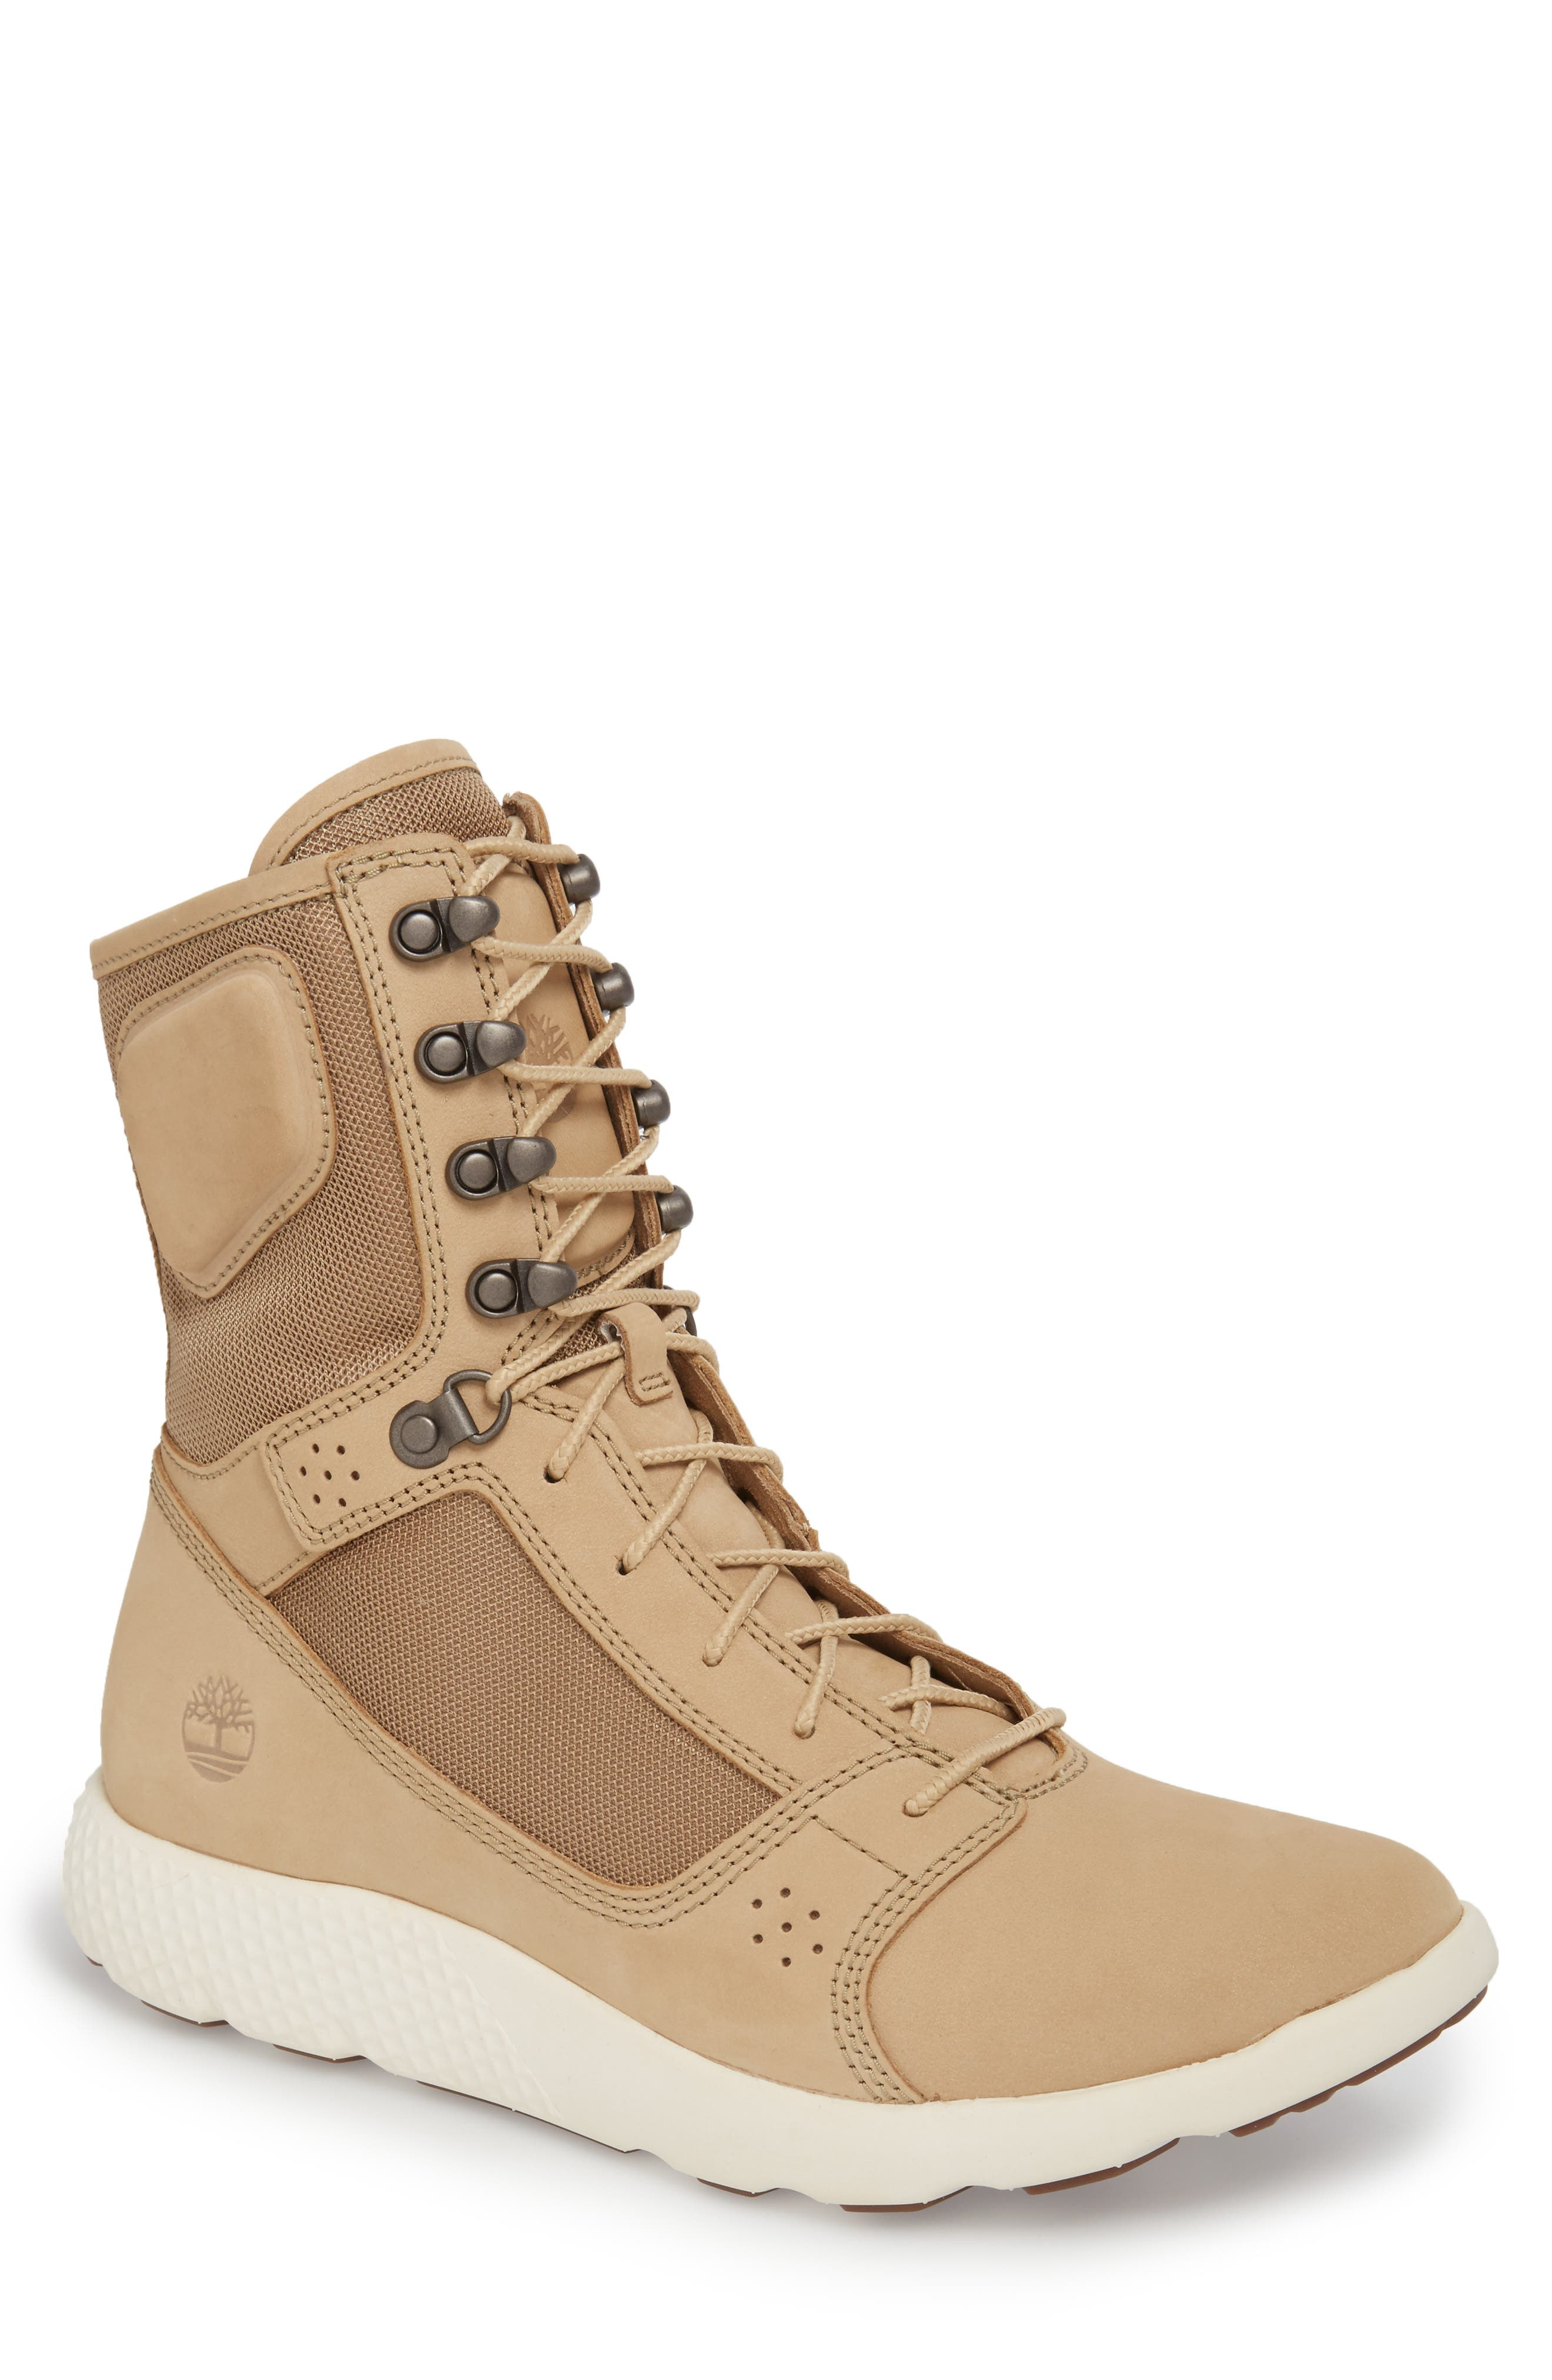 FlyRoam Tactical Boot,                             Main thumbnail 1, color,                             Cornstalk Nubuck Leather